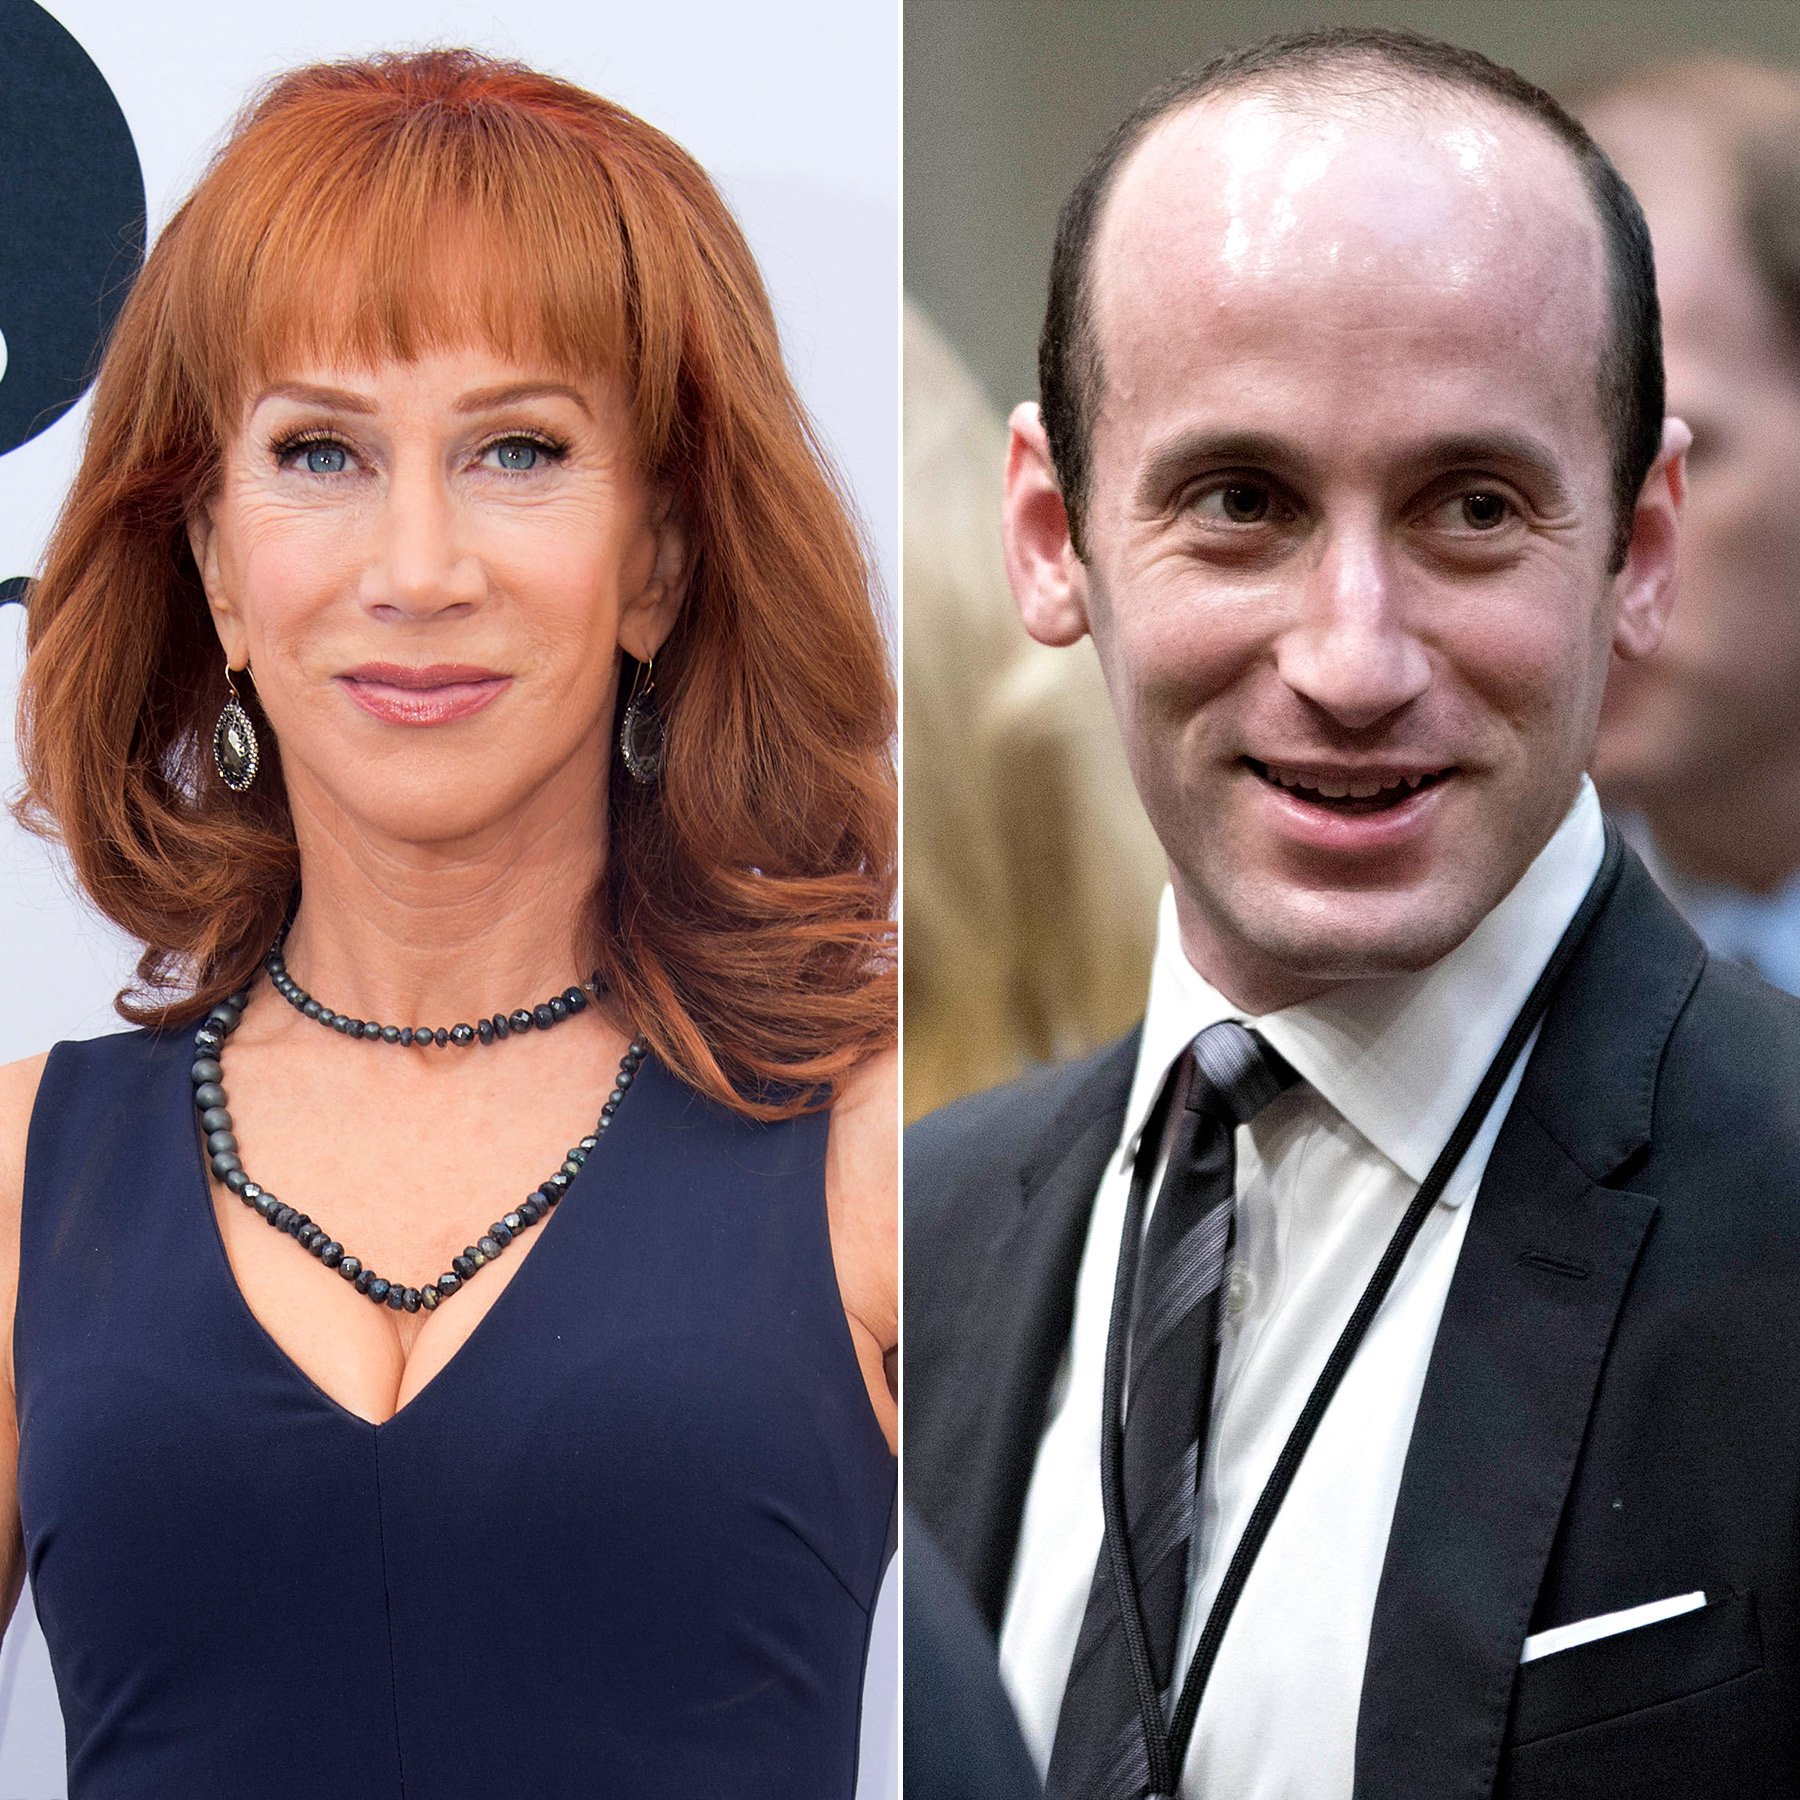 Kathy Griffin will play Stephen Miller on SNL